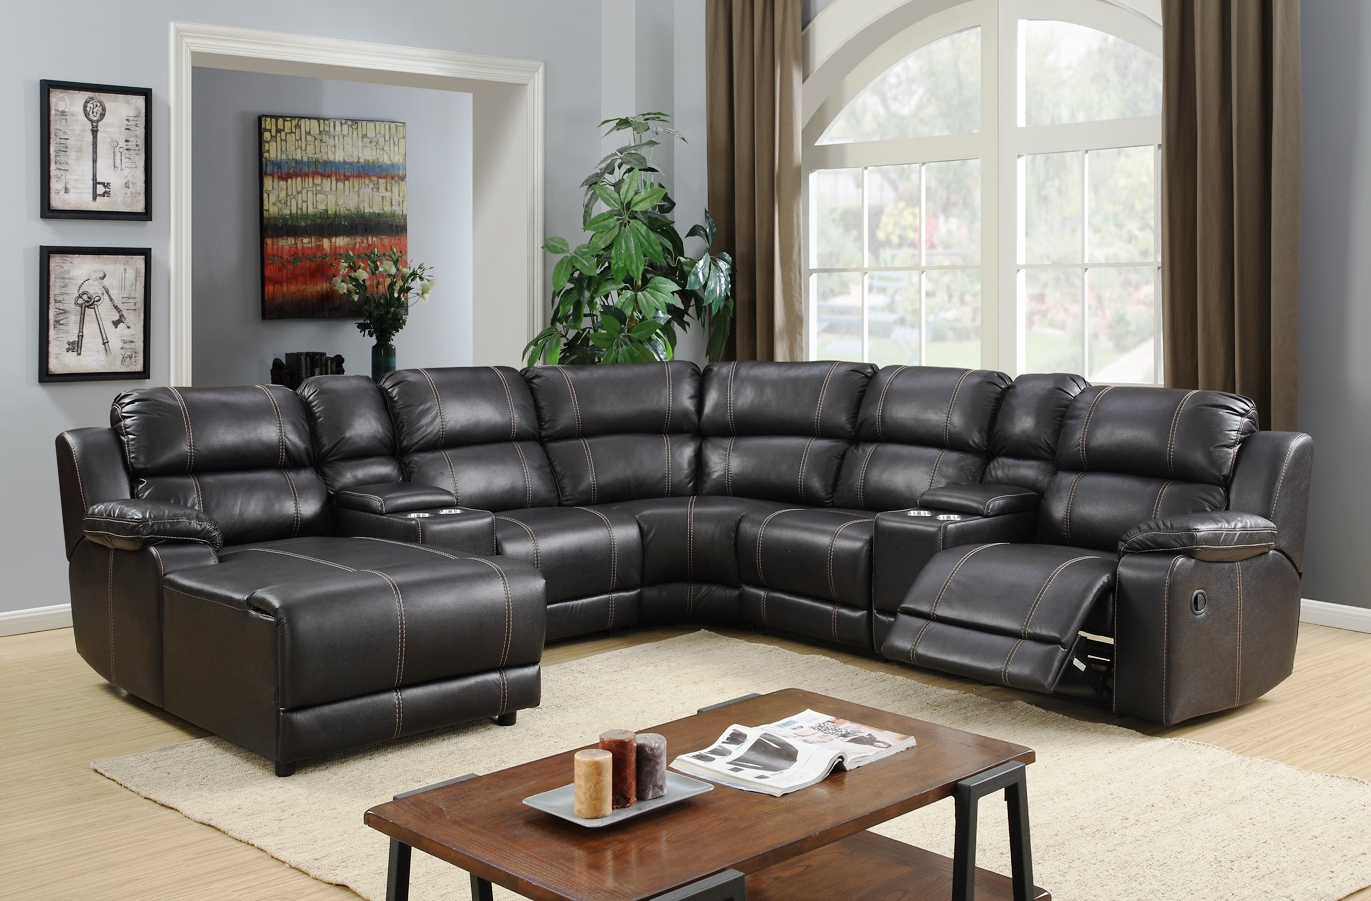 Preferred Jackson 6 Piece Power Reclining Sectionals Inside Jackson Reclining Sectional (View 12 of 20)